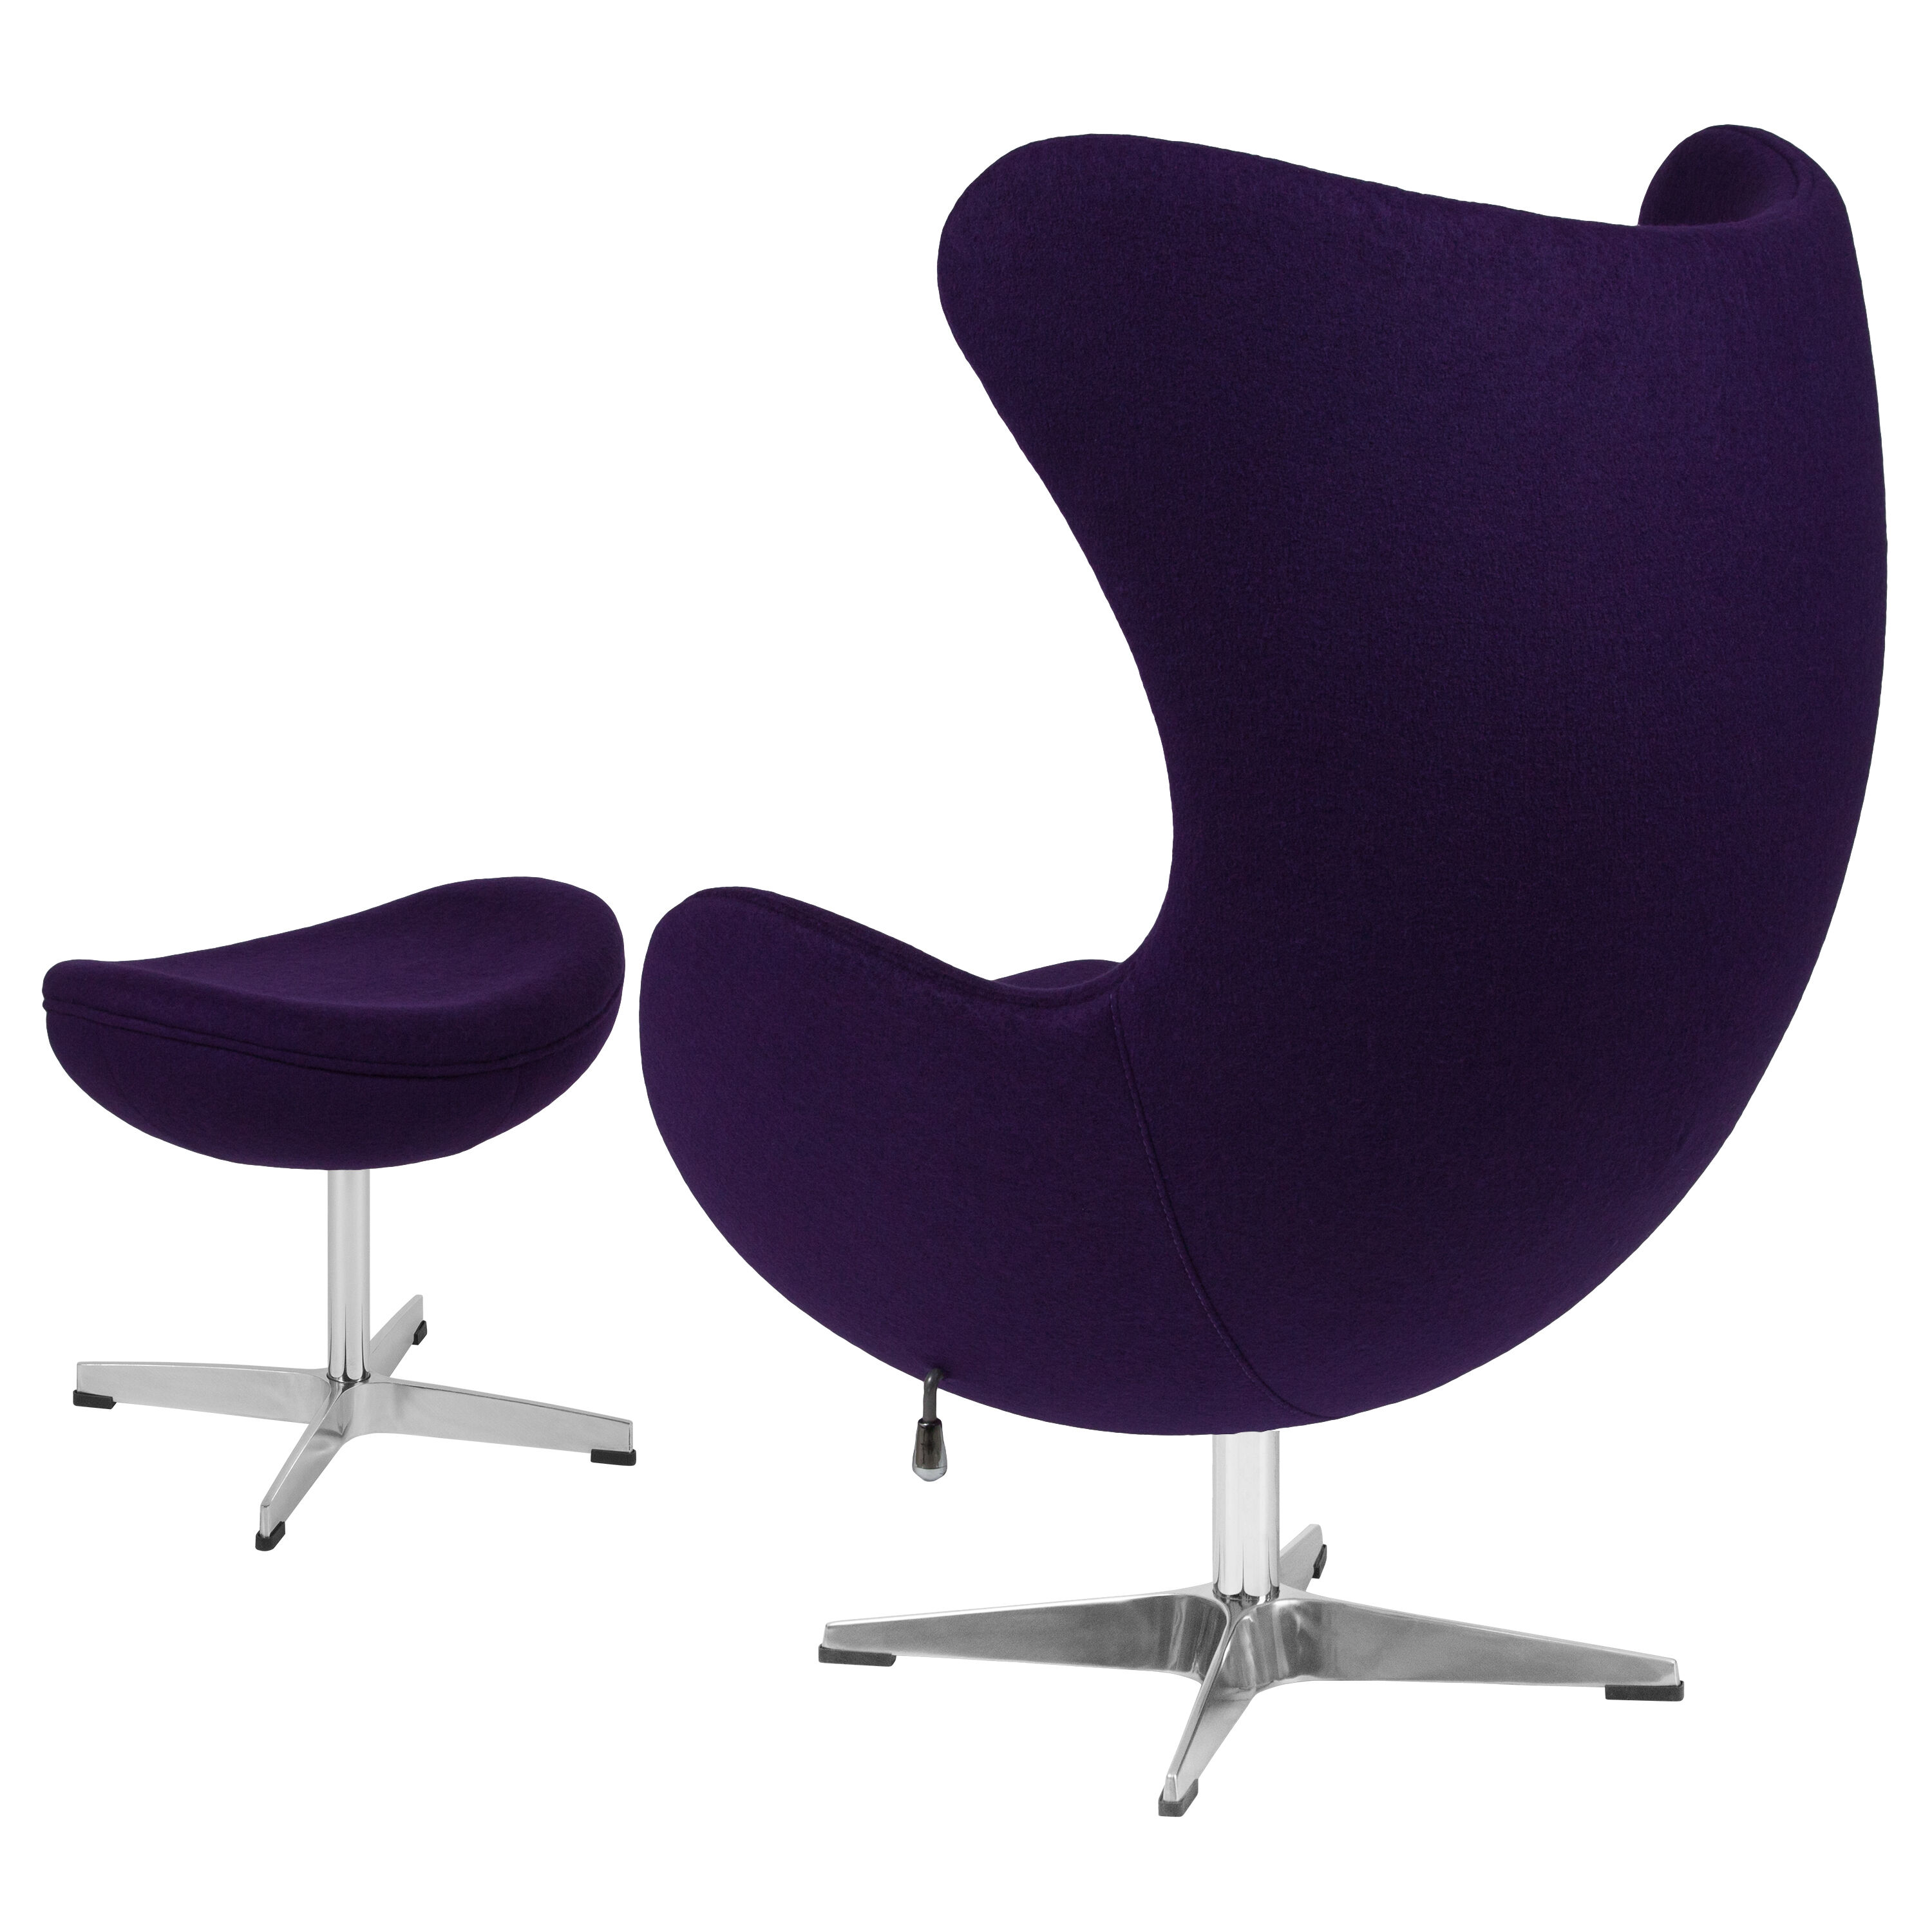 ... Our Purple Wool Fabric Egg Chair With Tilt Lock Mechanism And Ottoman  Is On Sale ...